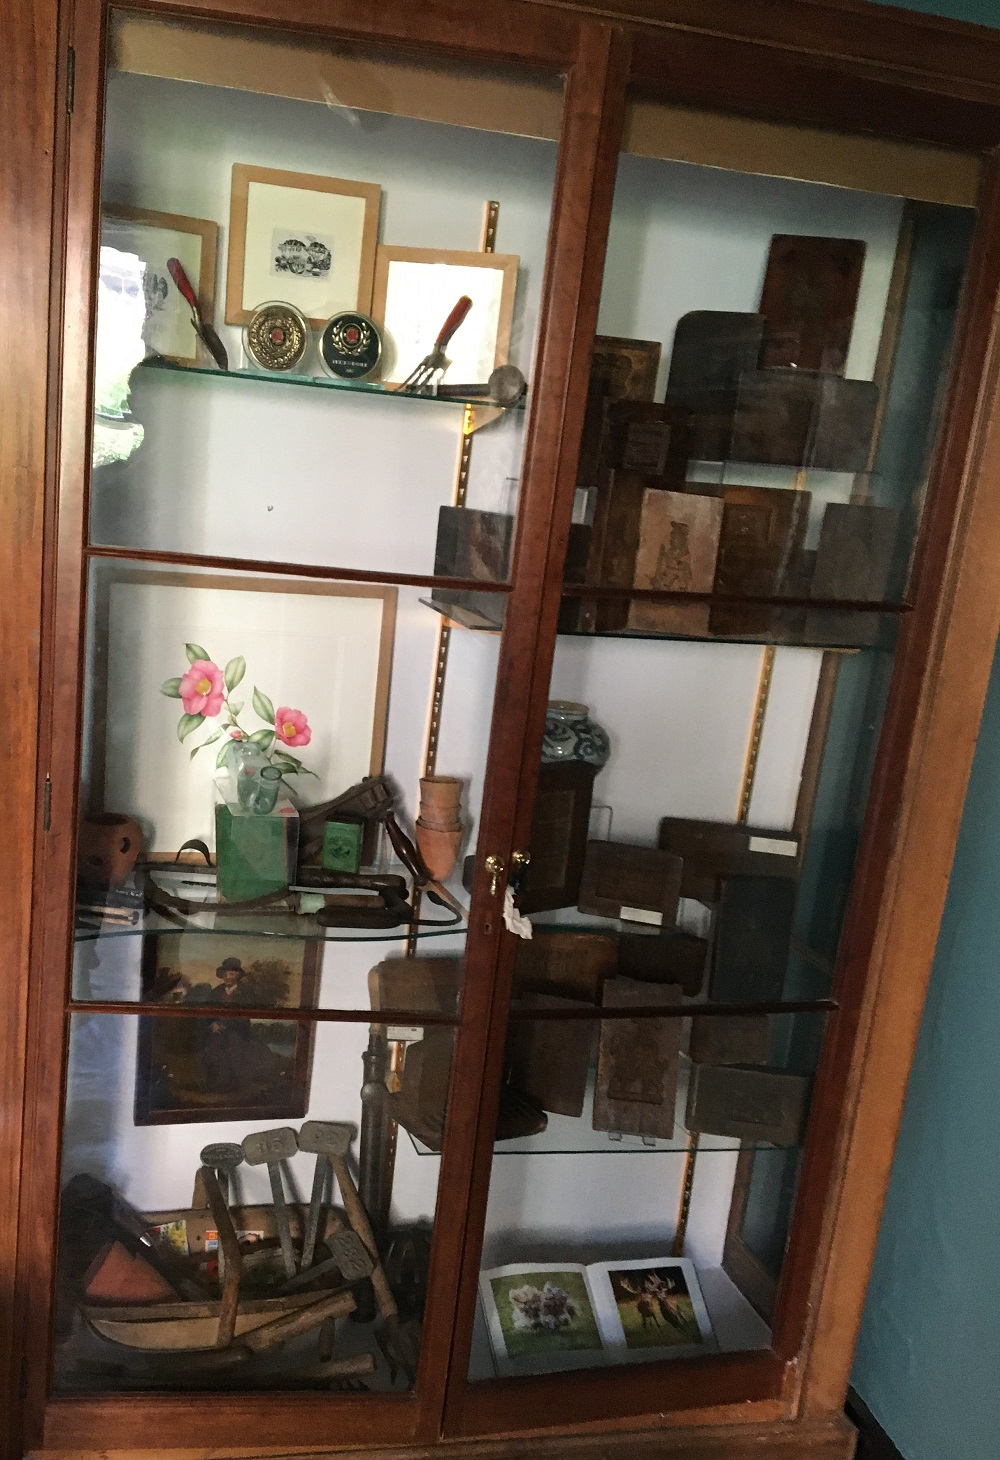 A cabinet displaying garden pieces